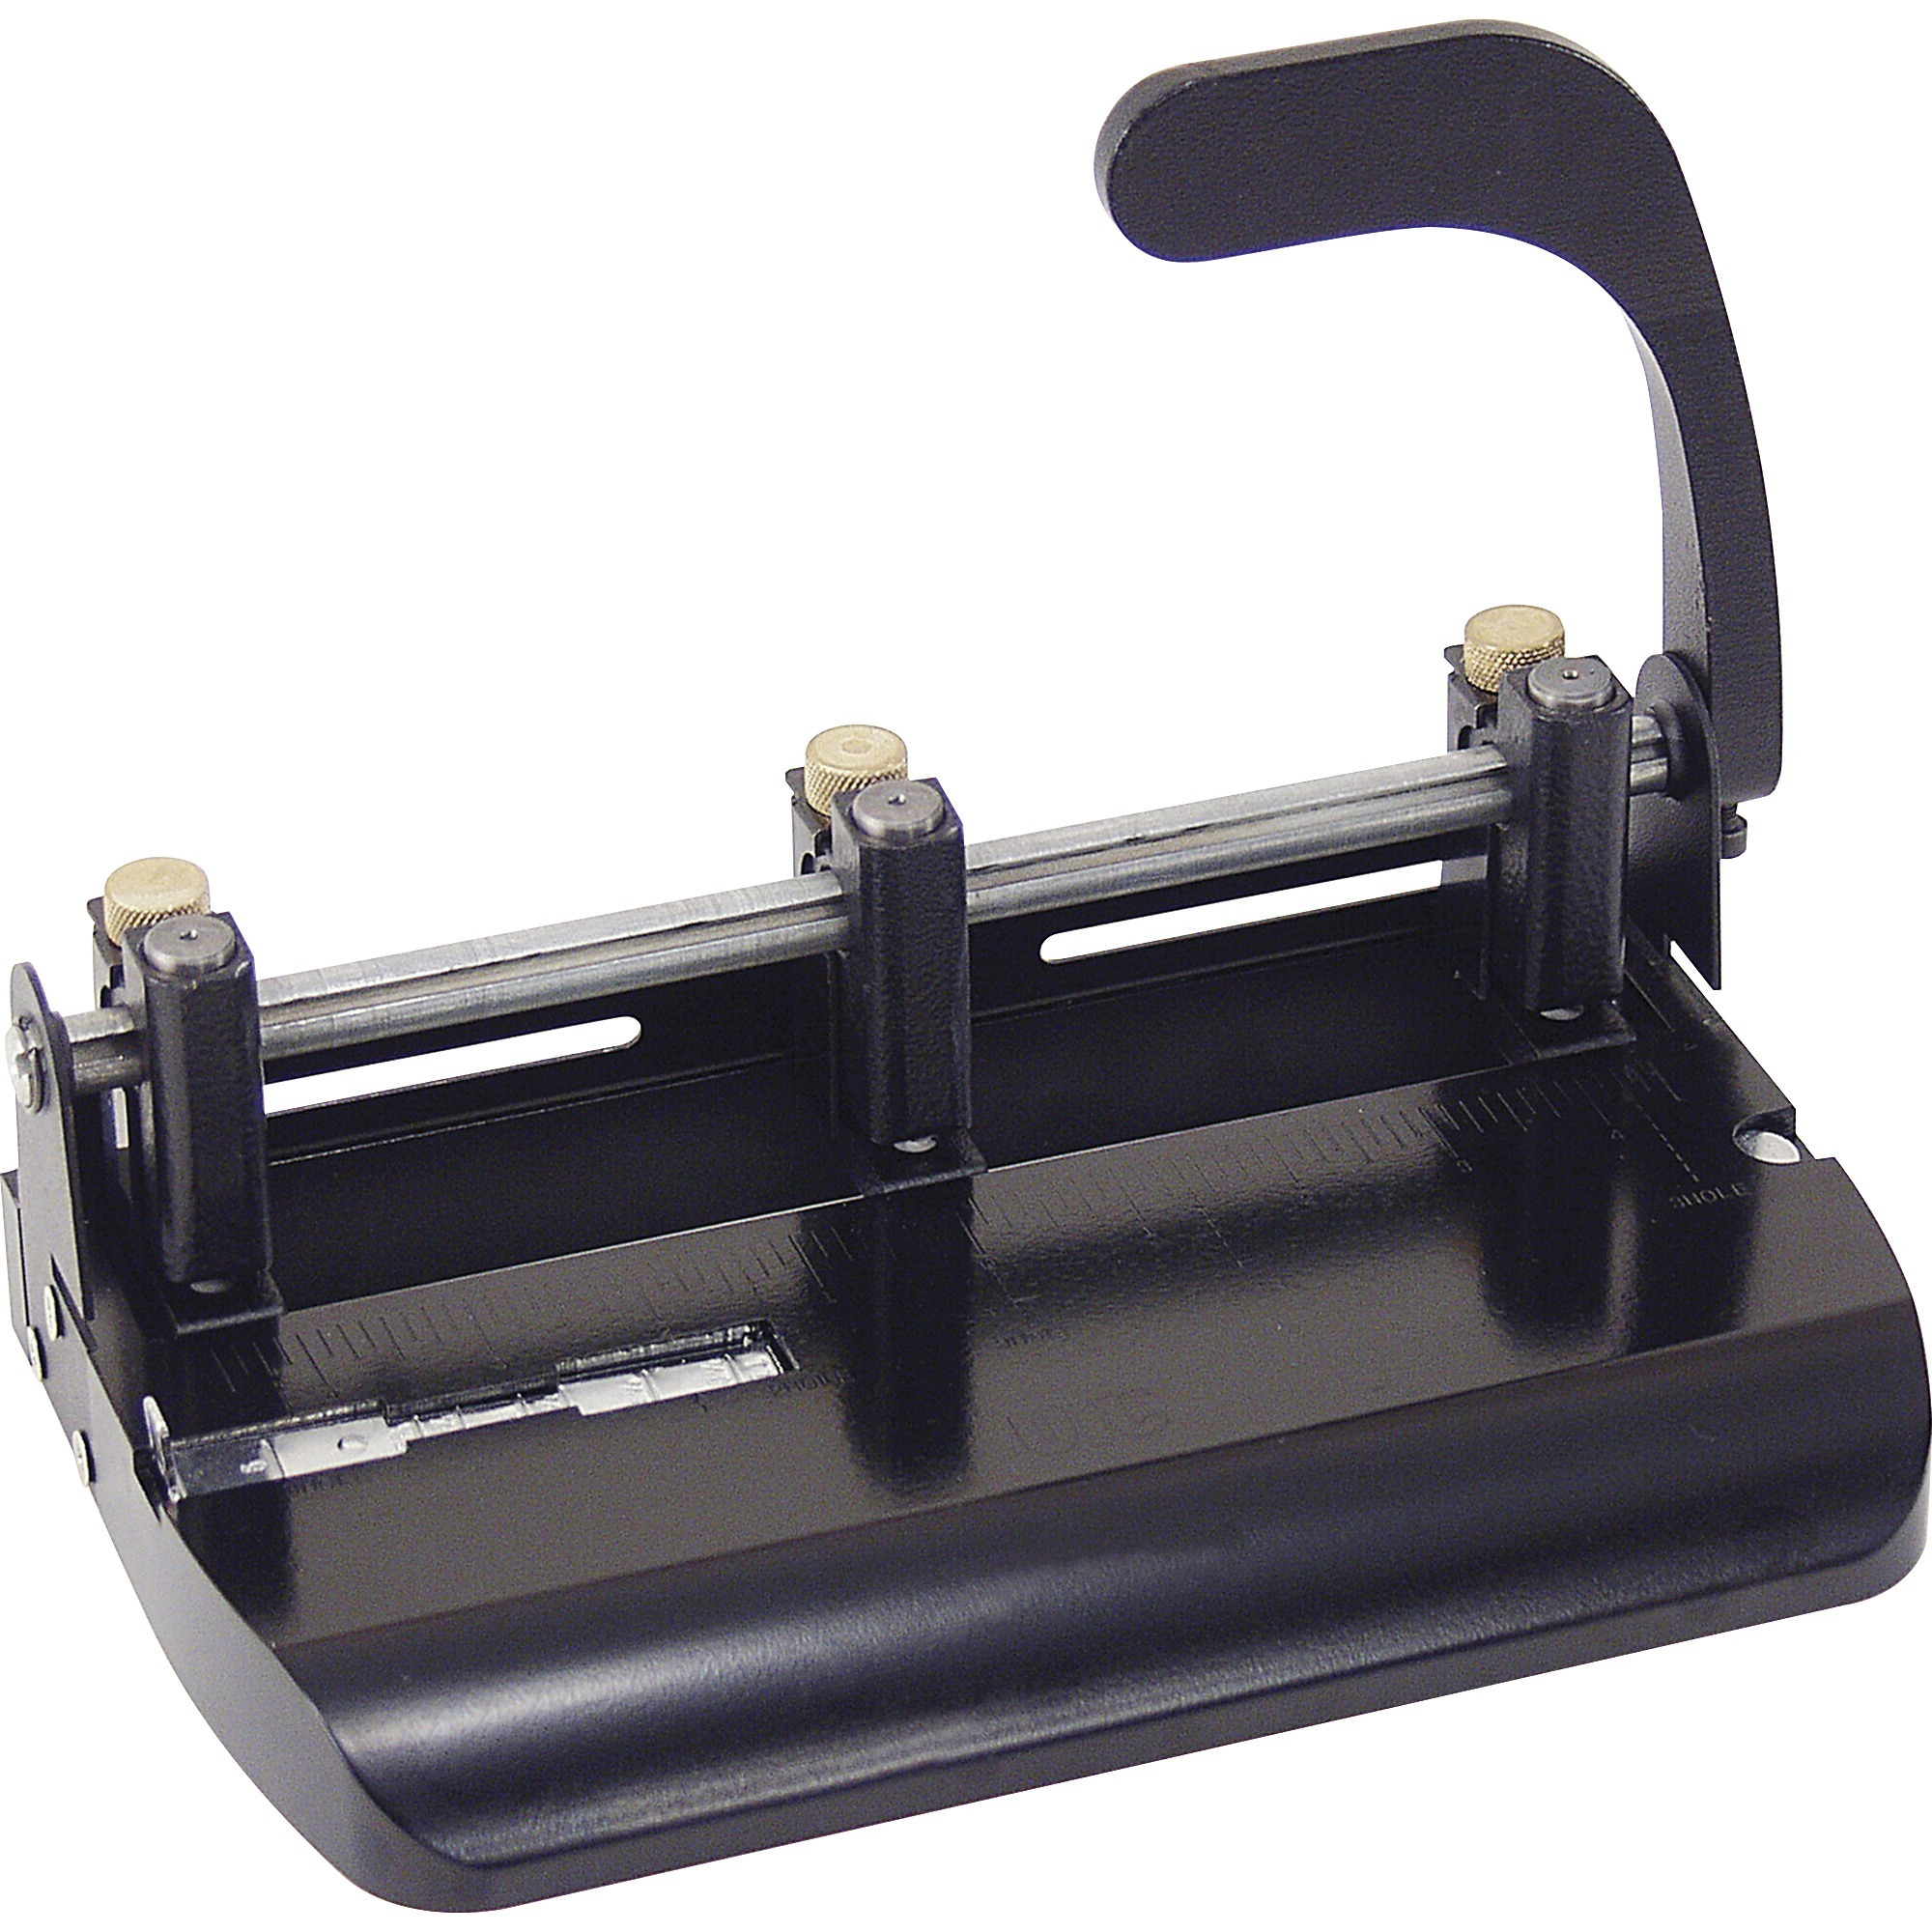 Officemate OIC Heavy Duty Adjustable 2-3 Hole Punch with Lever Handle, Black (90078)